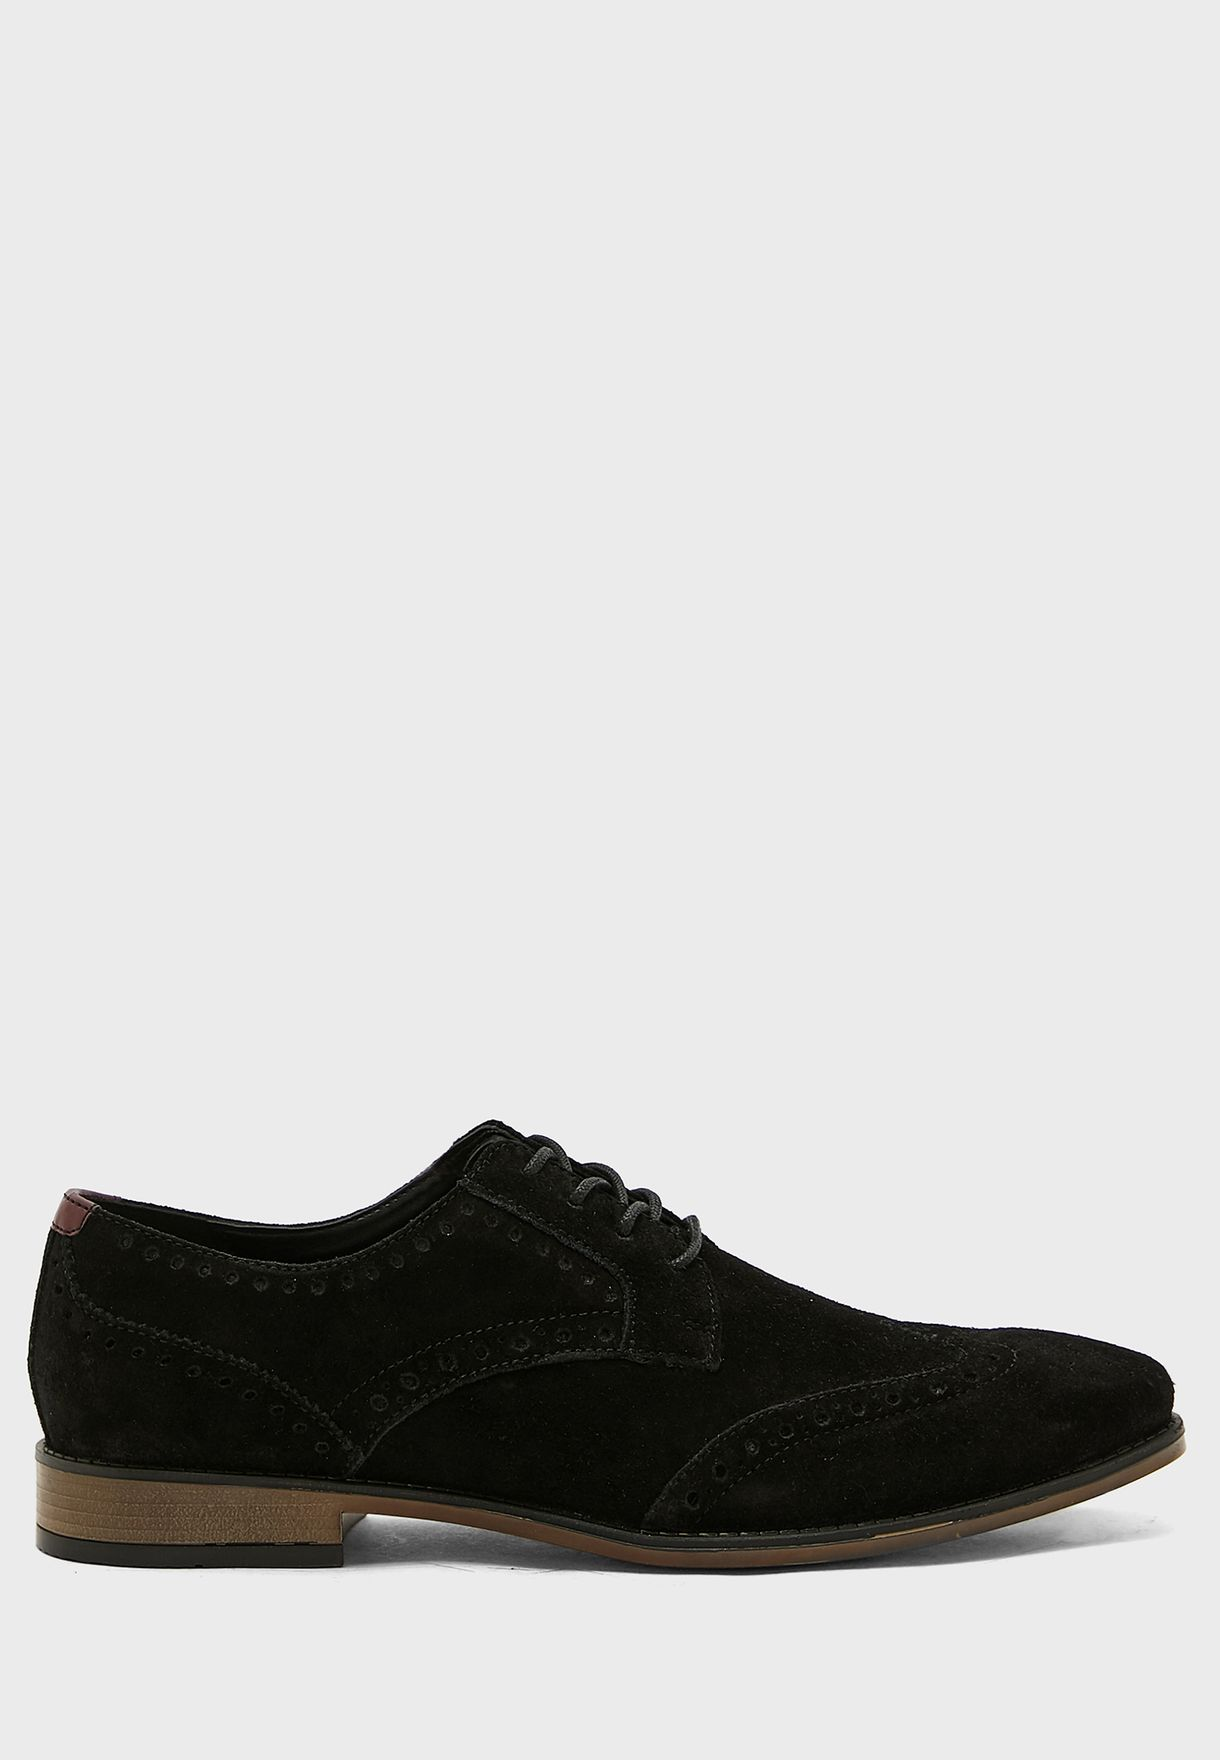 Classic Suede Brogue Lace Up